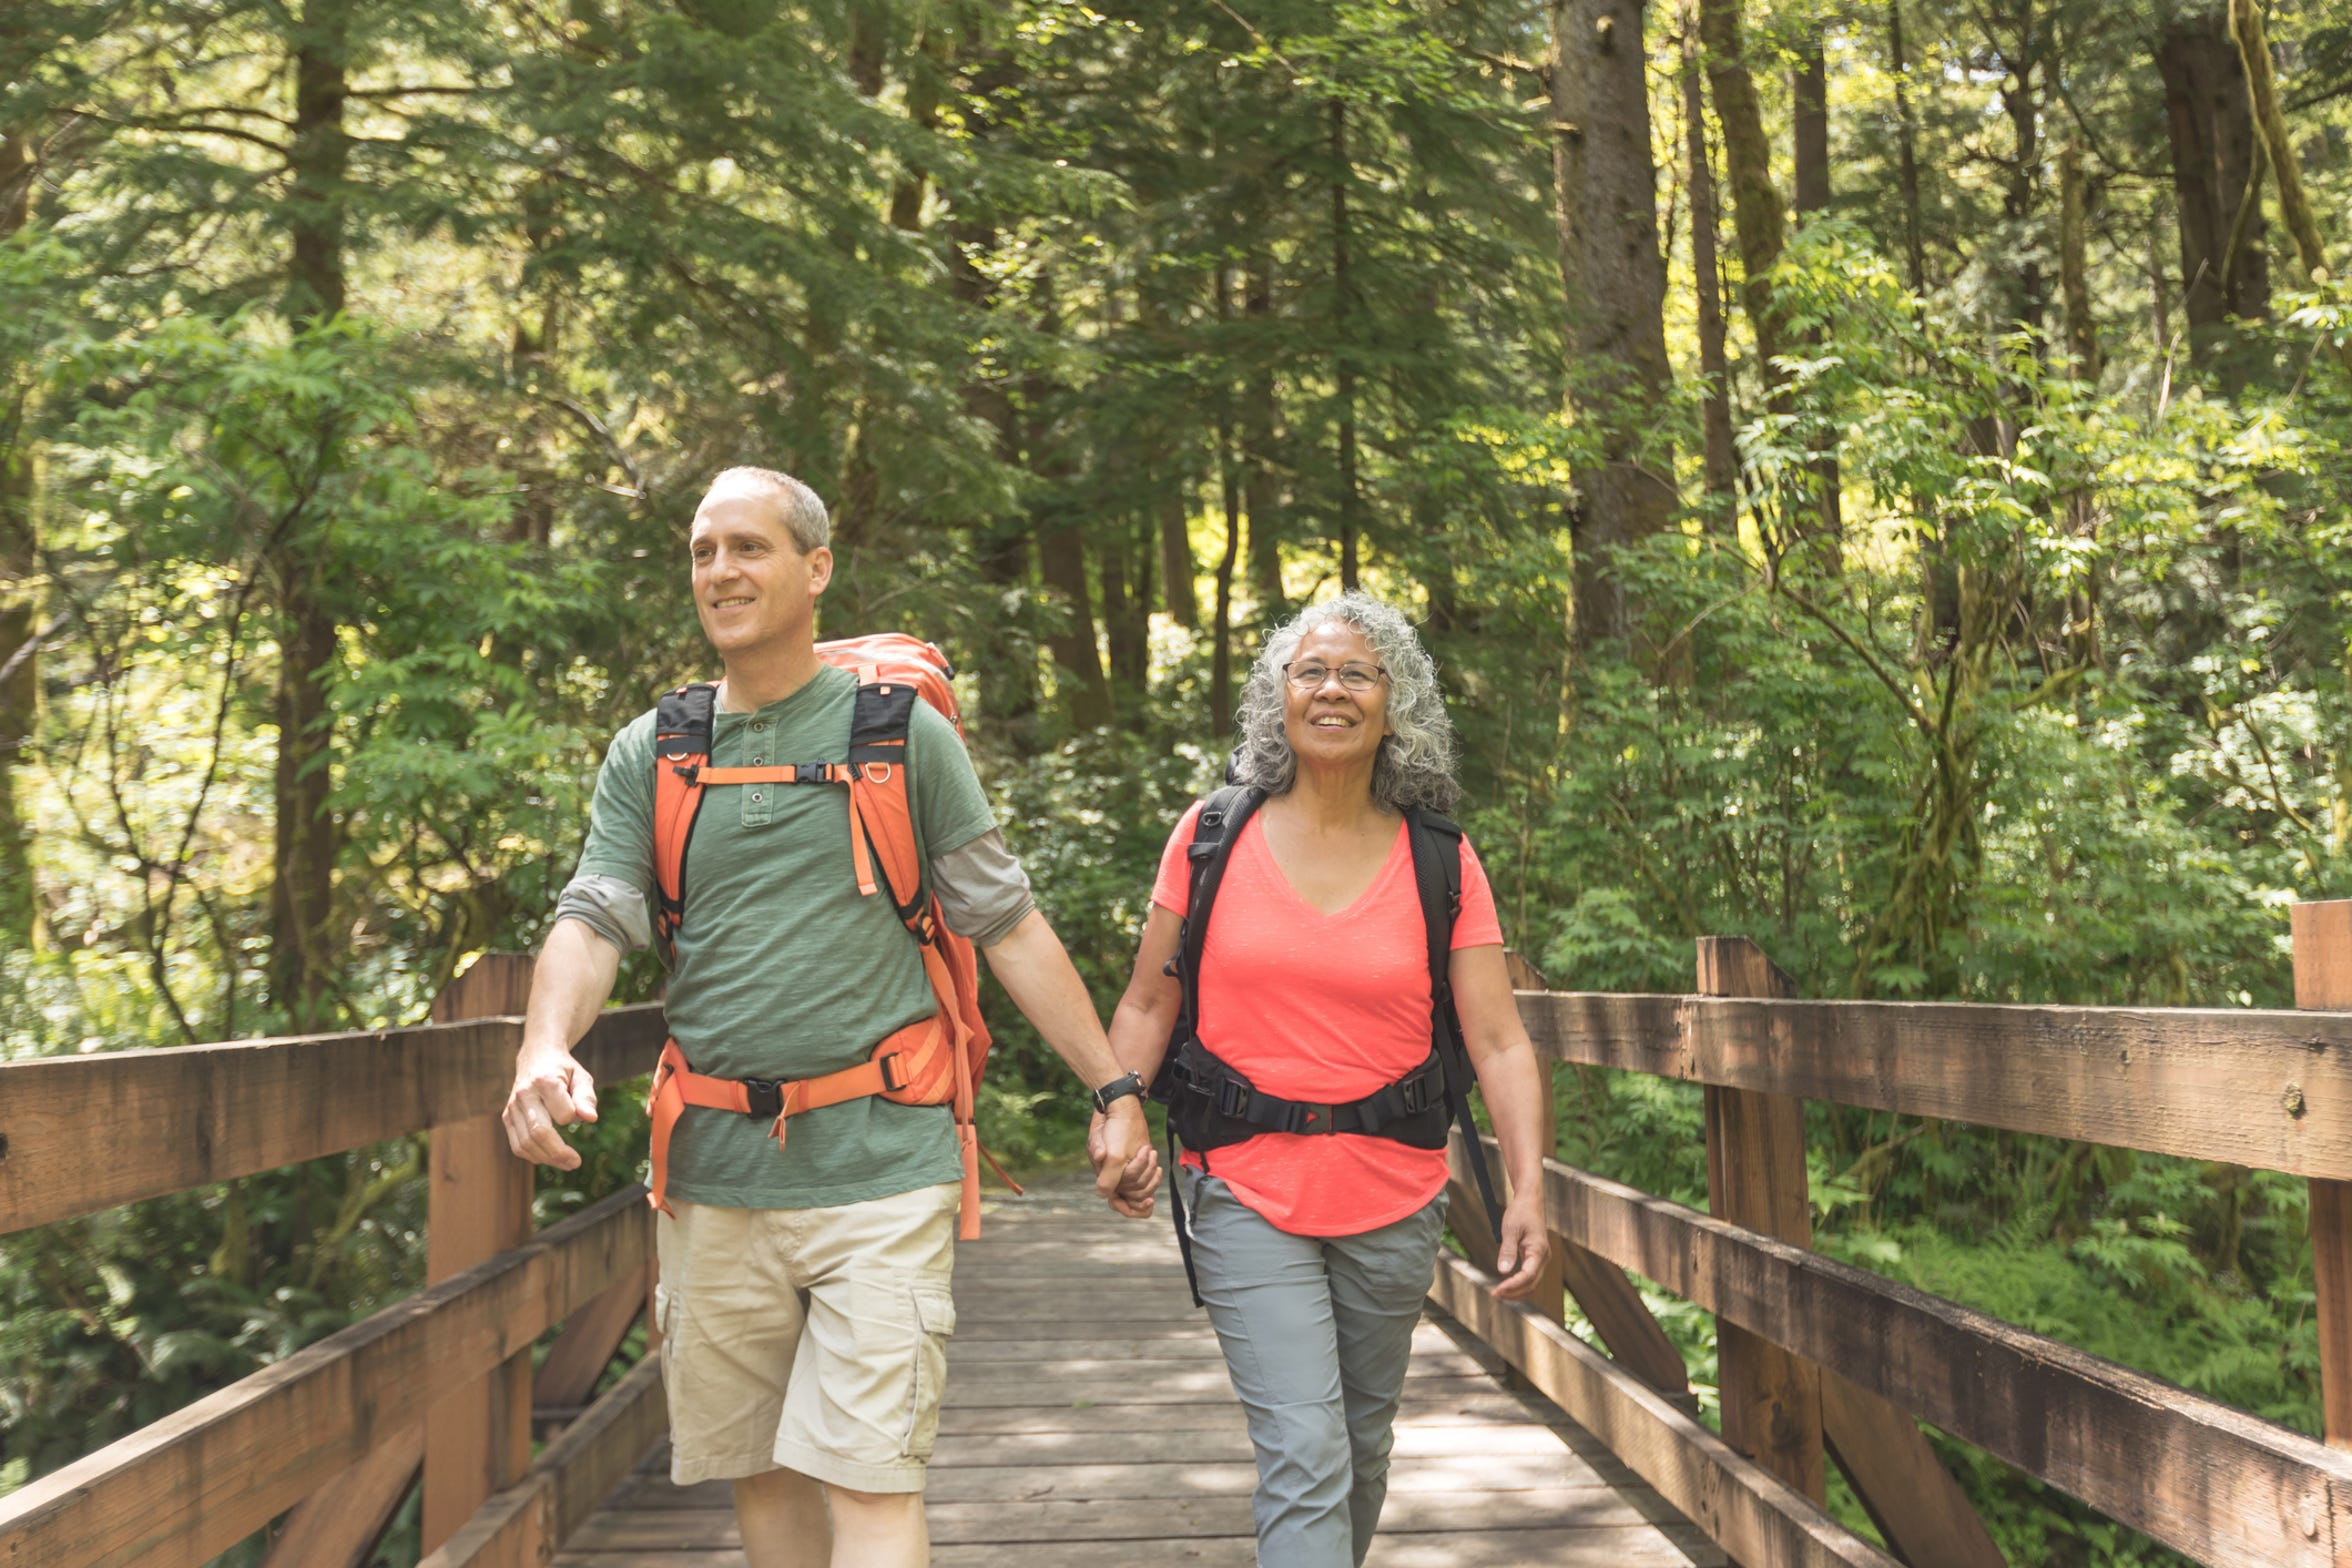 The Willamette Valley offers many outdoor opportunities to help reduce stress and improve health. If you're just starting out, check with your physician and start slow.